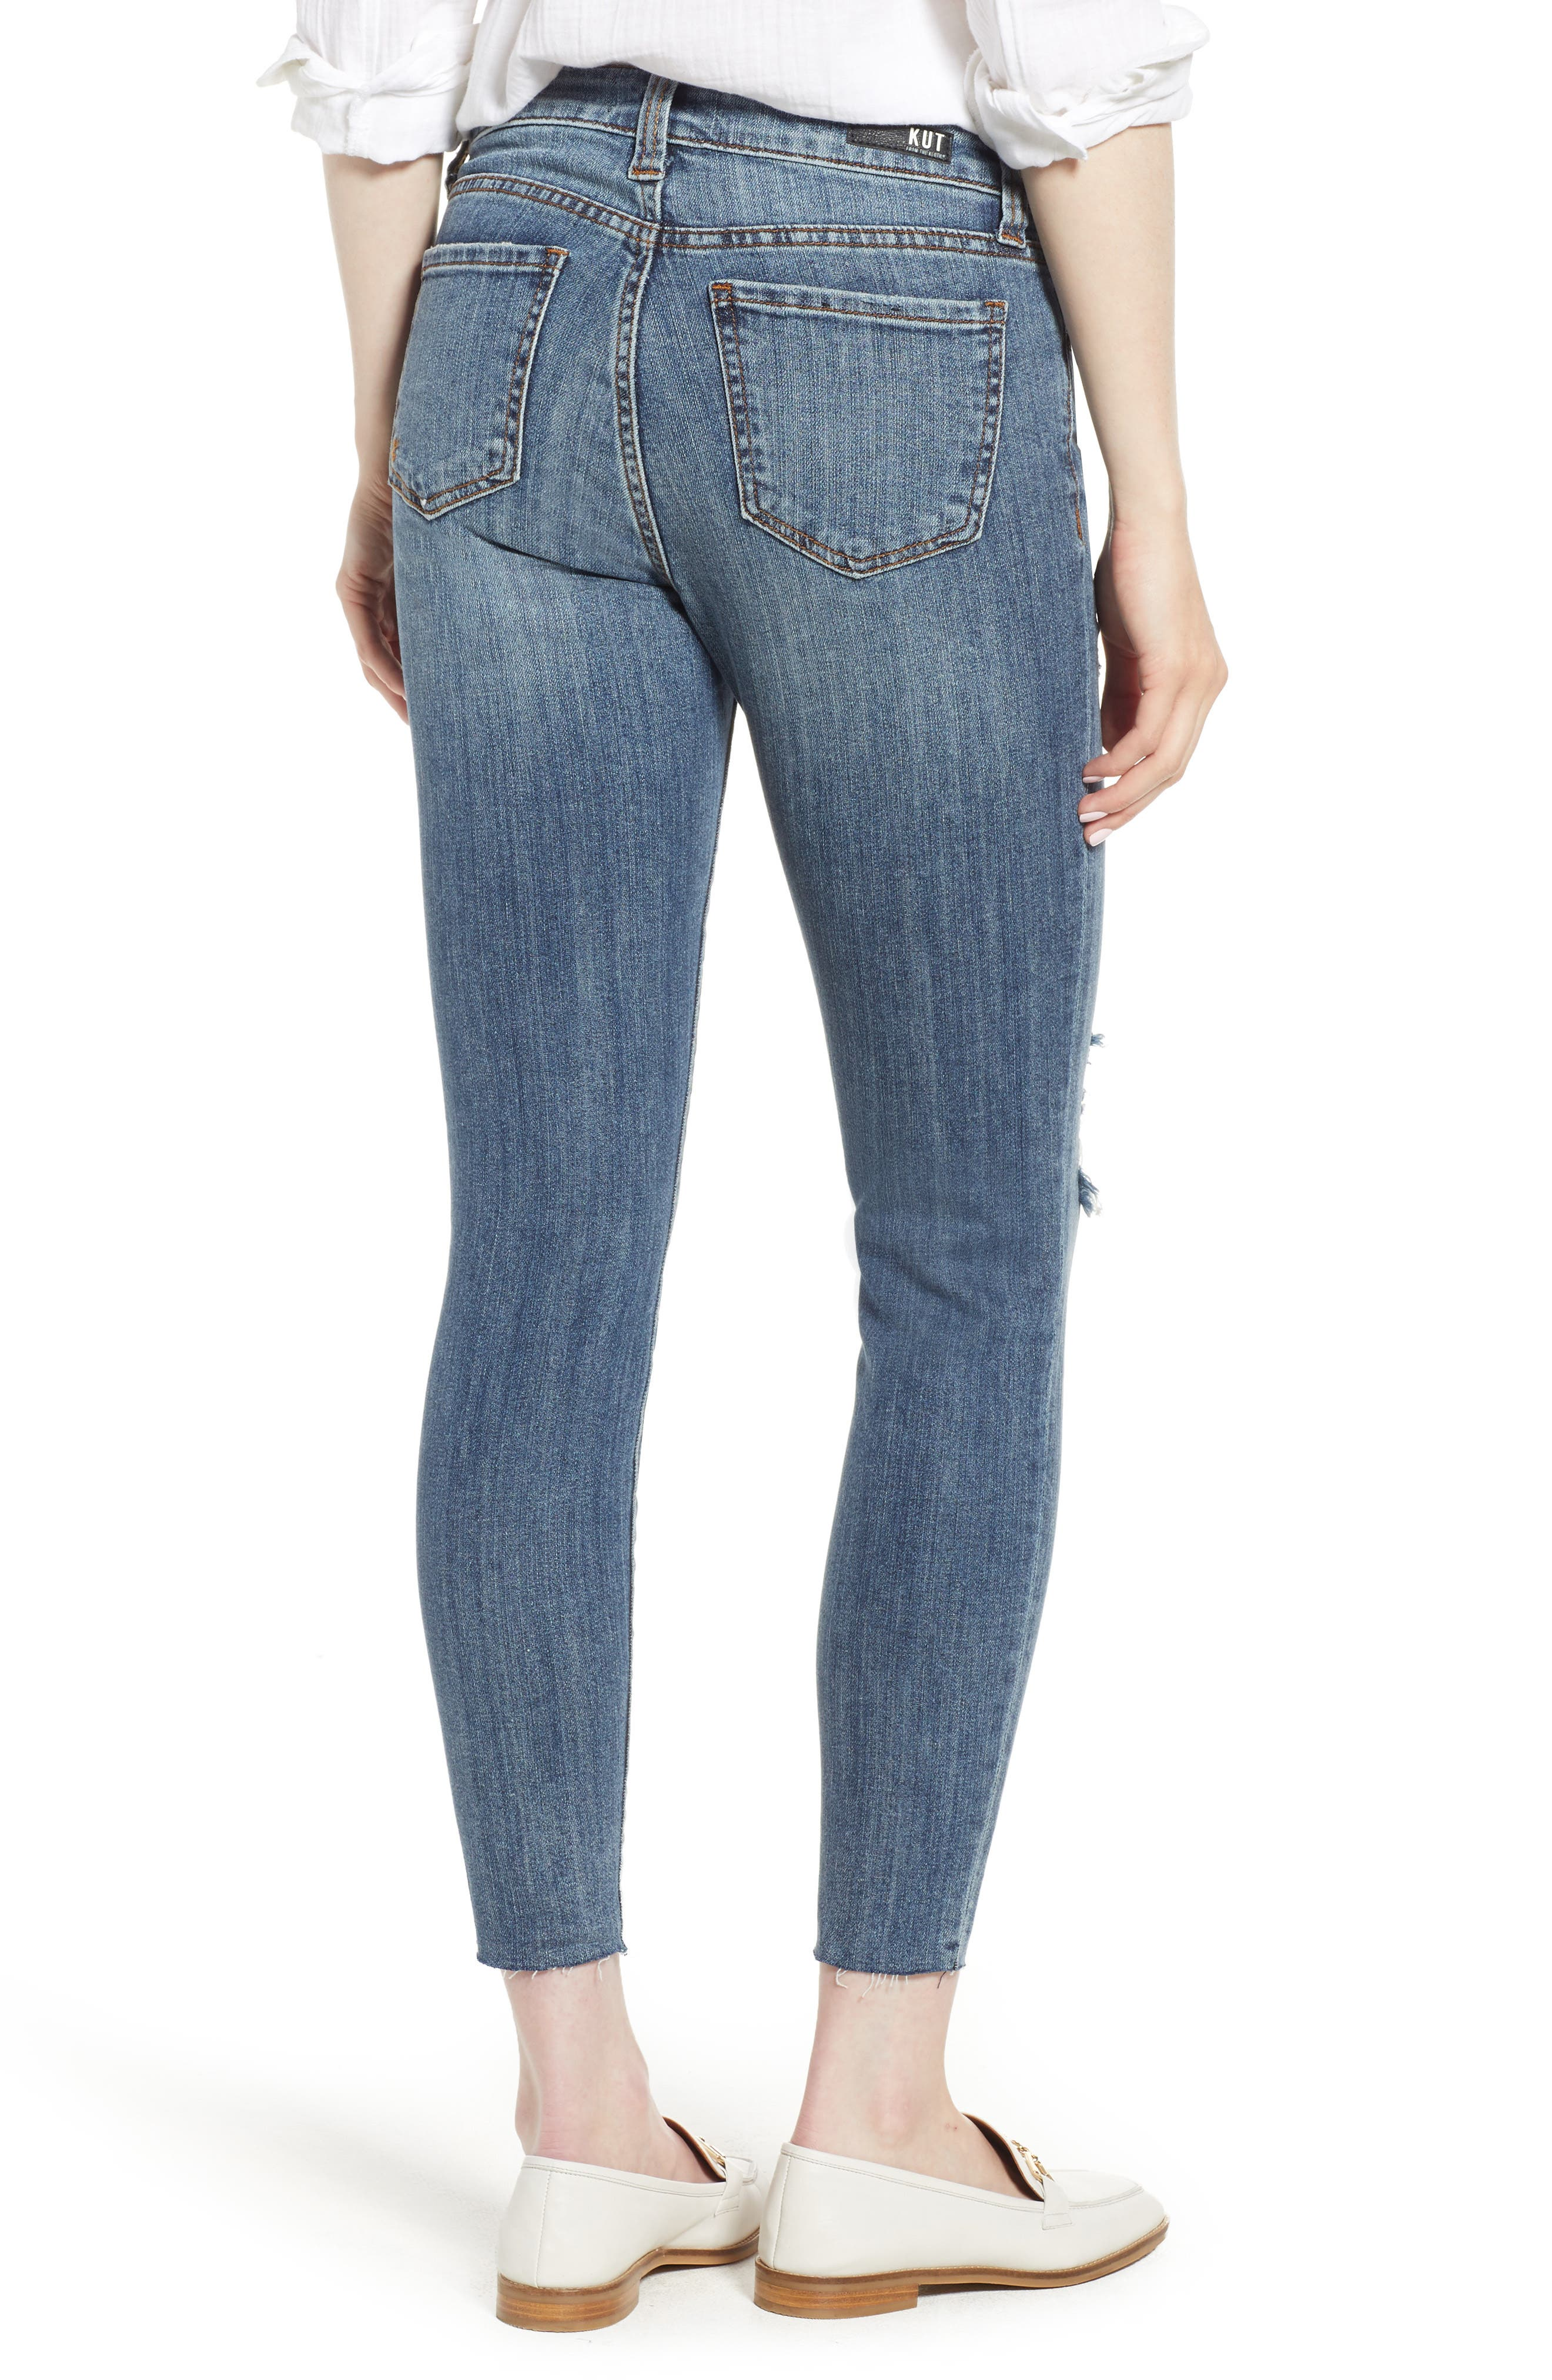 KUT from the Kloth Connie Raw Hem Ankle Jeans,                             Alternate thumbnail 2, color,                             Refinement